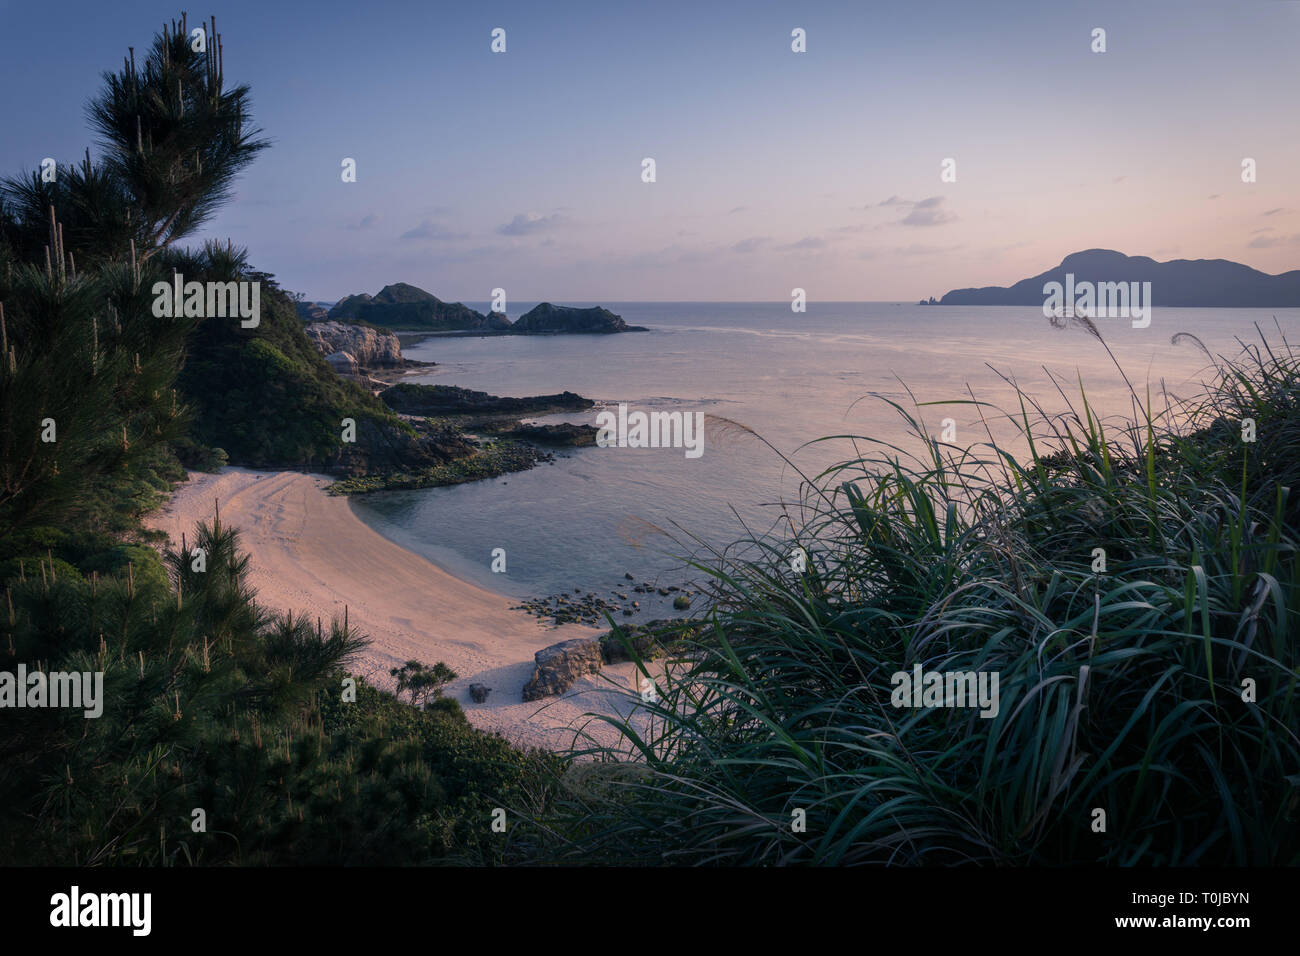 Evening on Akajima Island in the Kerama Islands, Okinawa, Japan - Stock Image